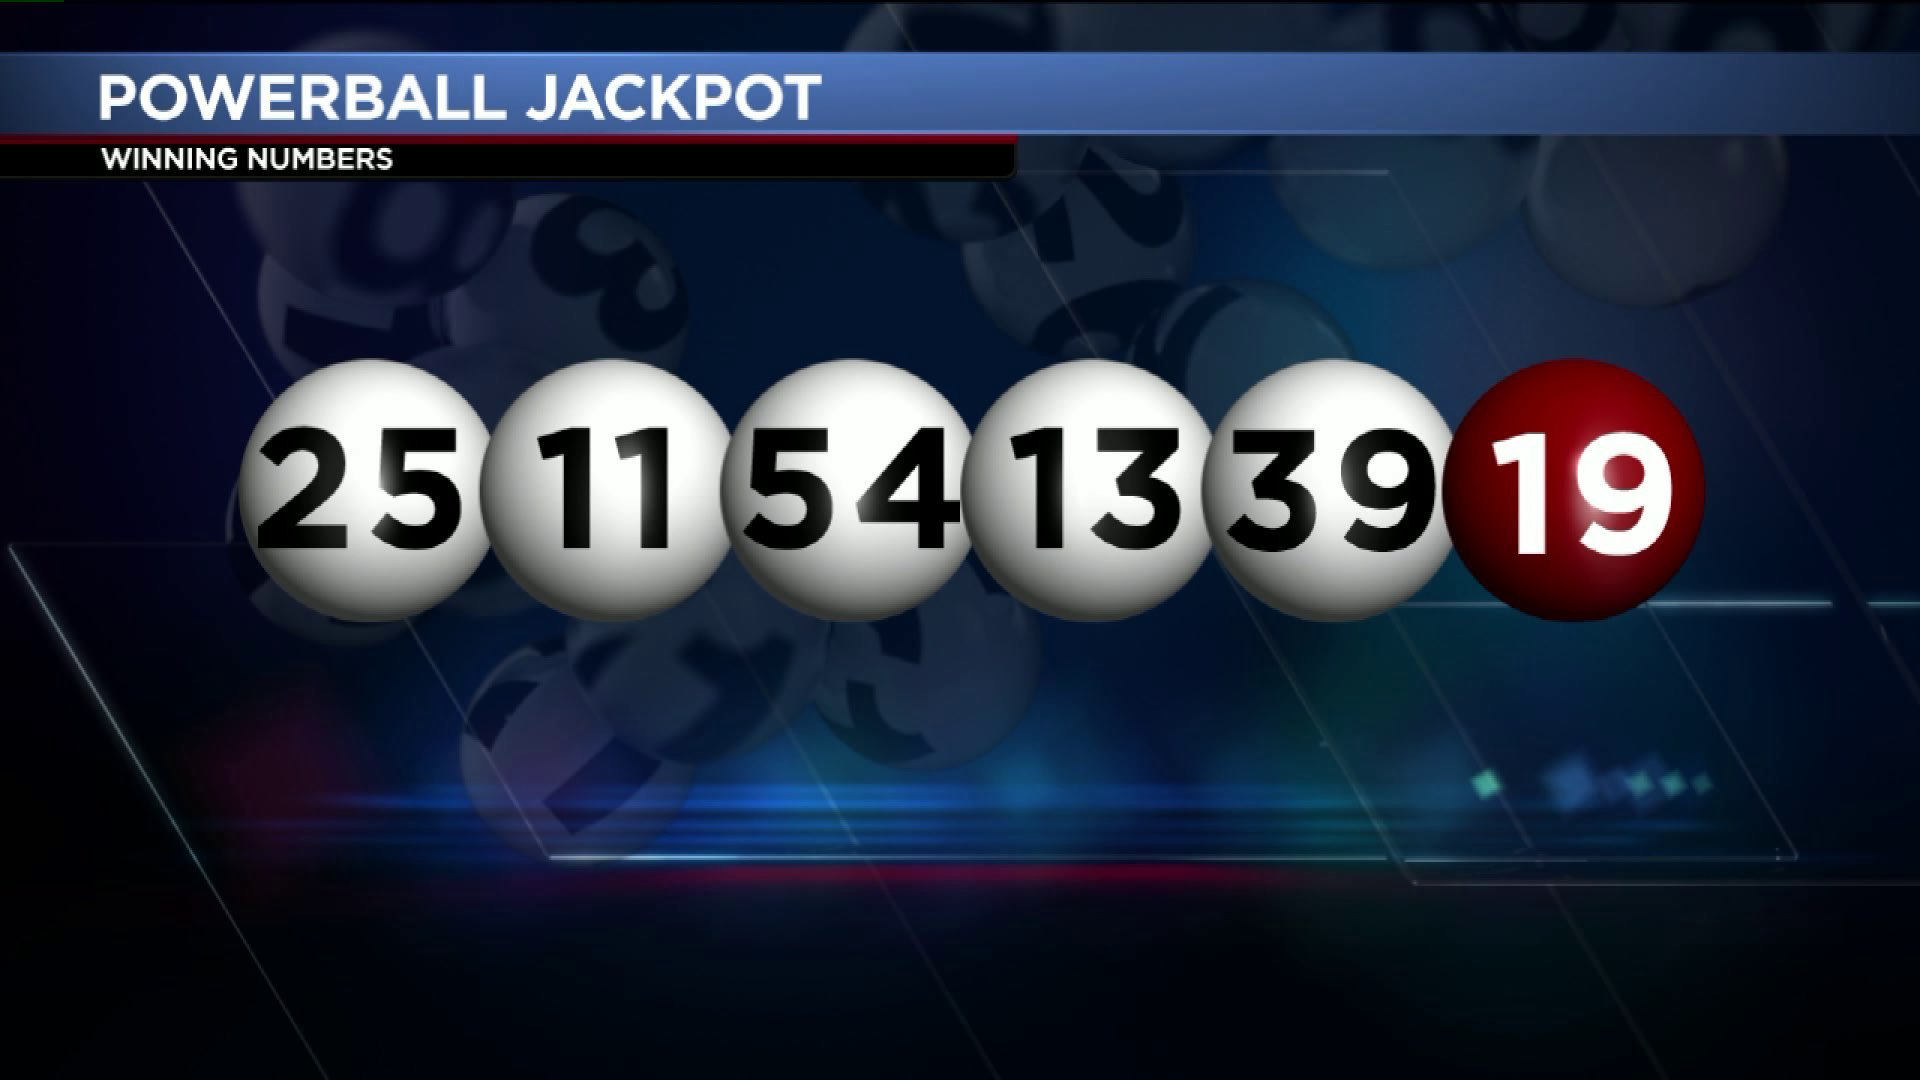 powerball may 19 photo - 1